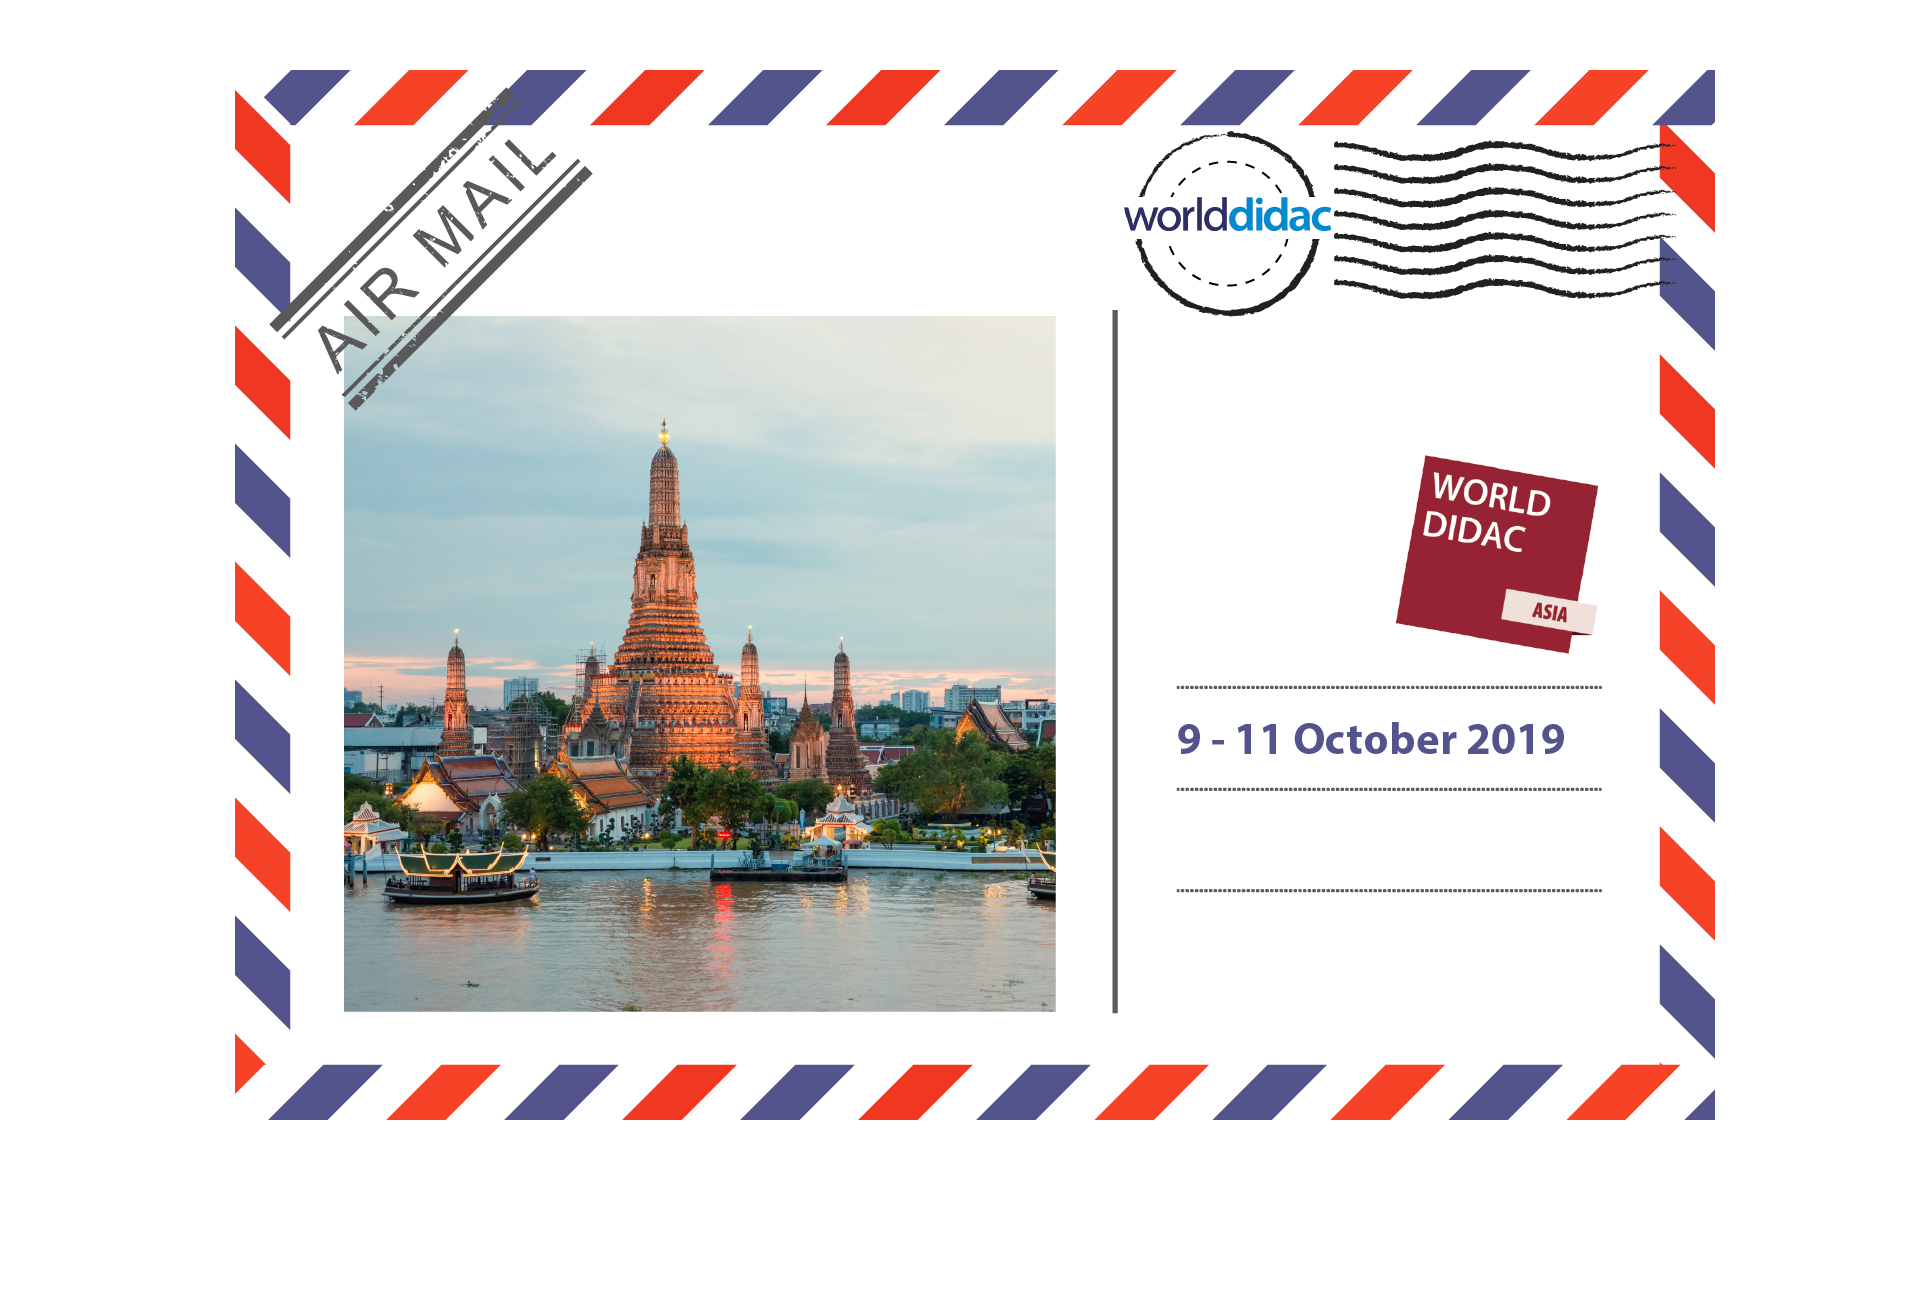 Air Mail Worlddidac Asia - Logo and Picture of Wat Arun